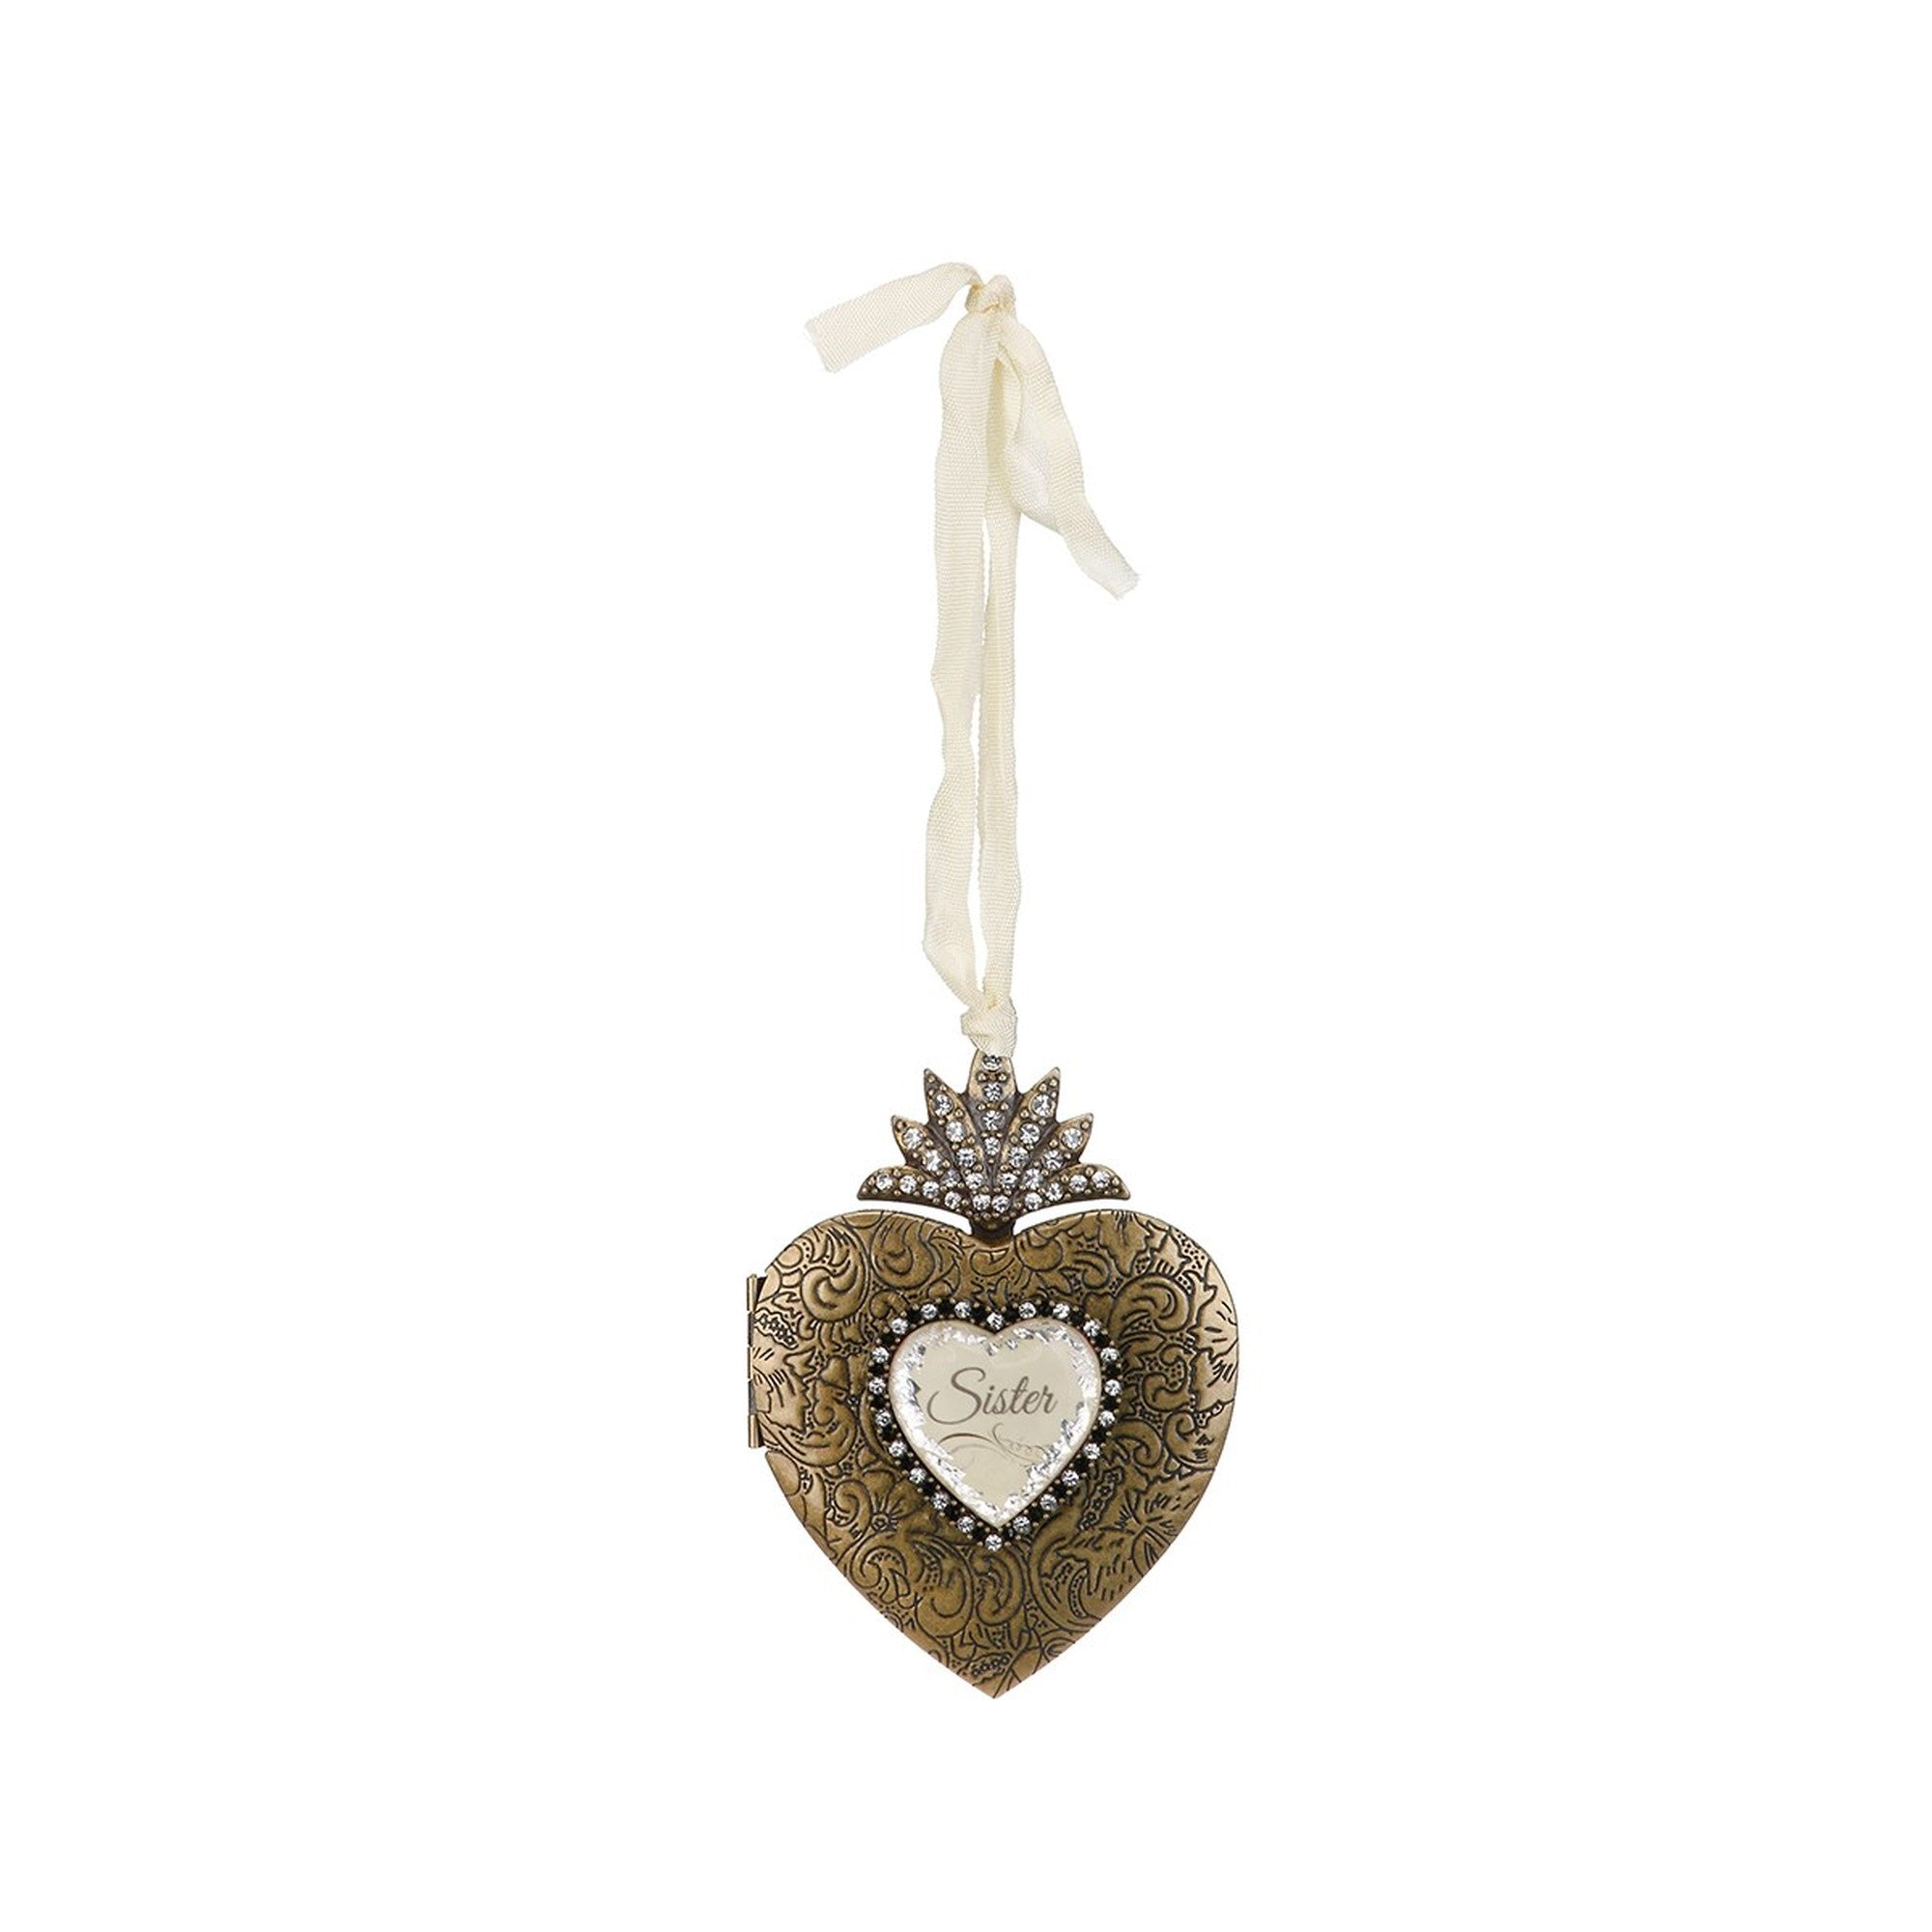 A Gilded Life Sister Heart Locket